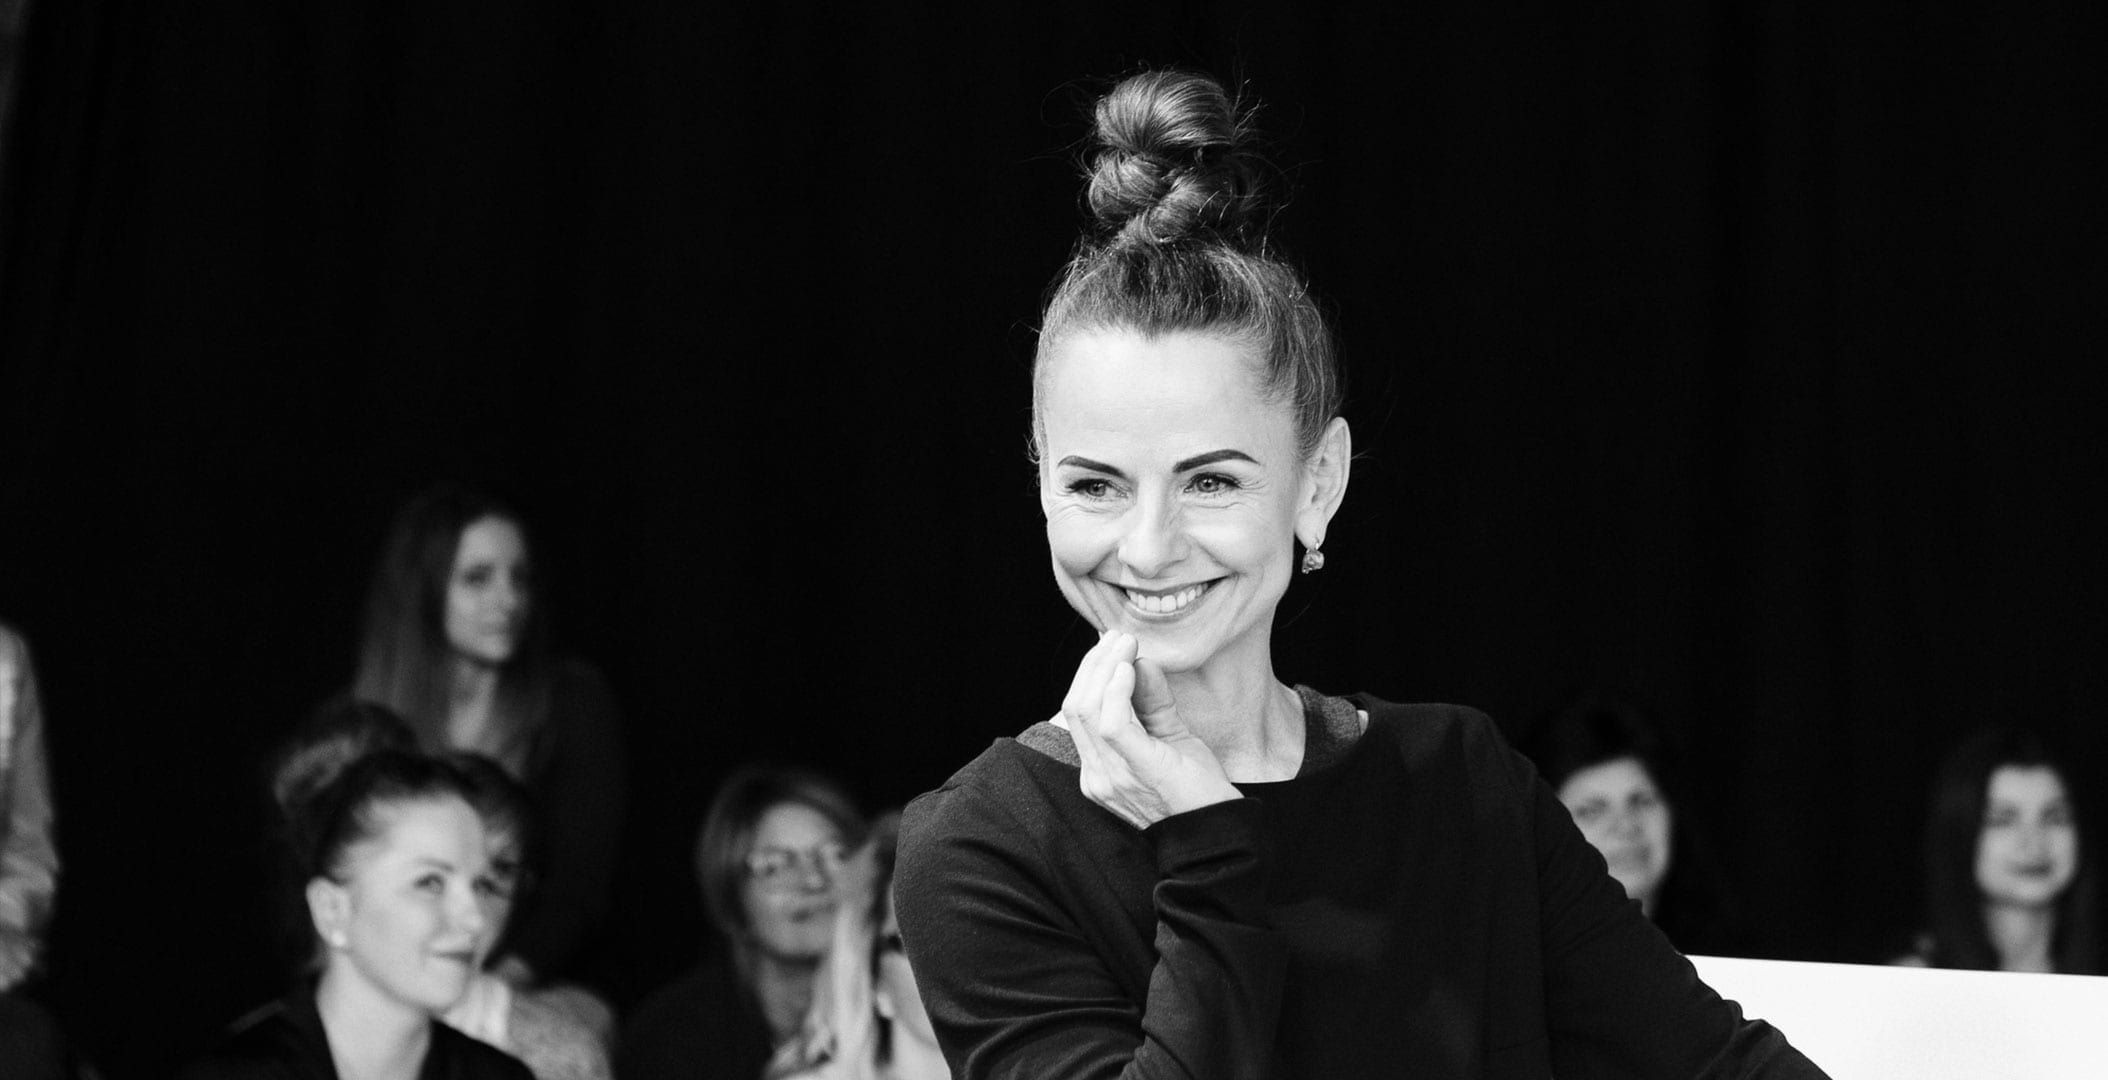 Orgænic Lifestyle Co-Founder & Owner Petra Brockmann